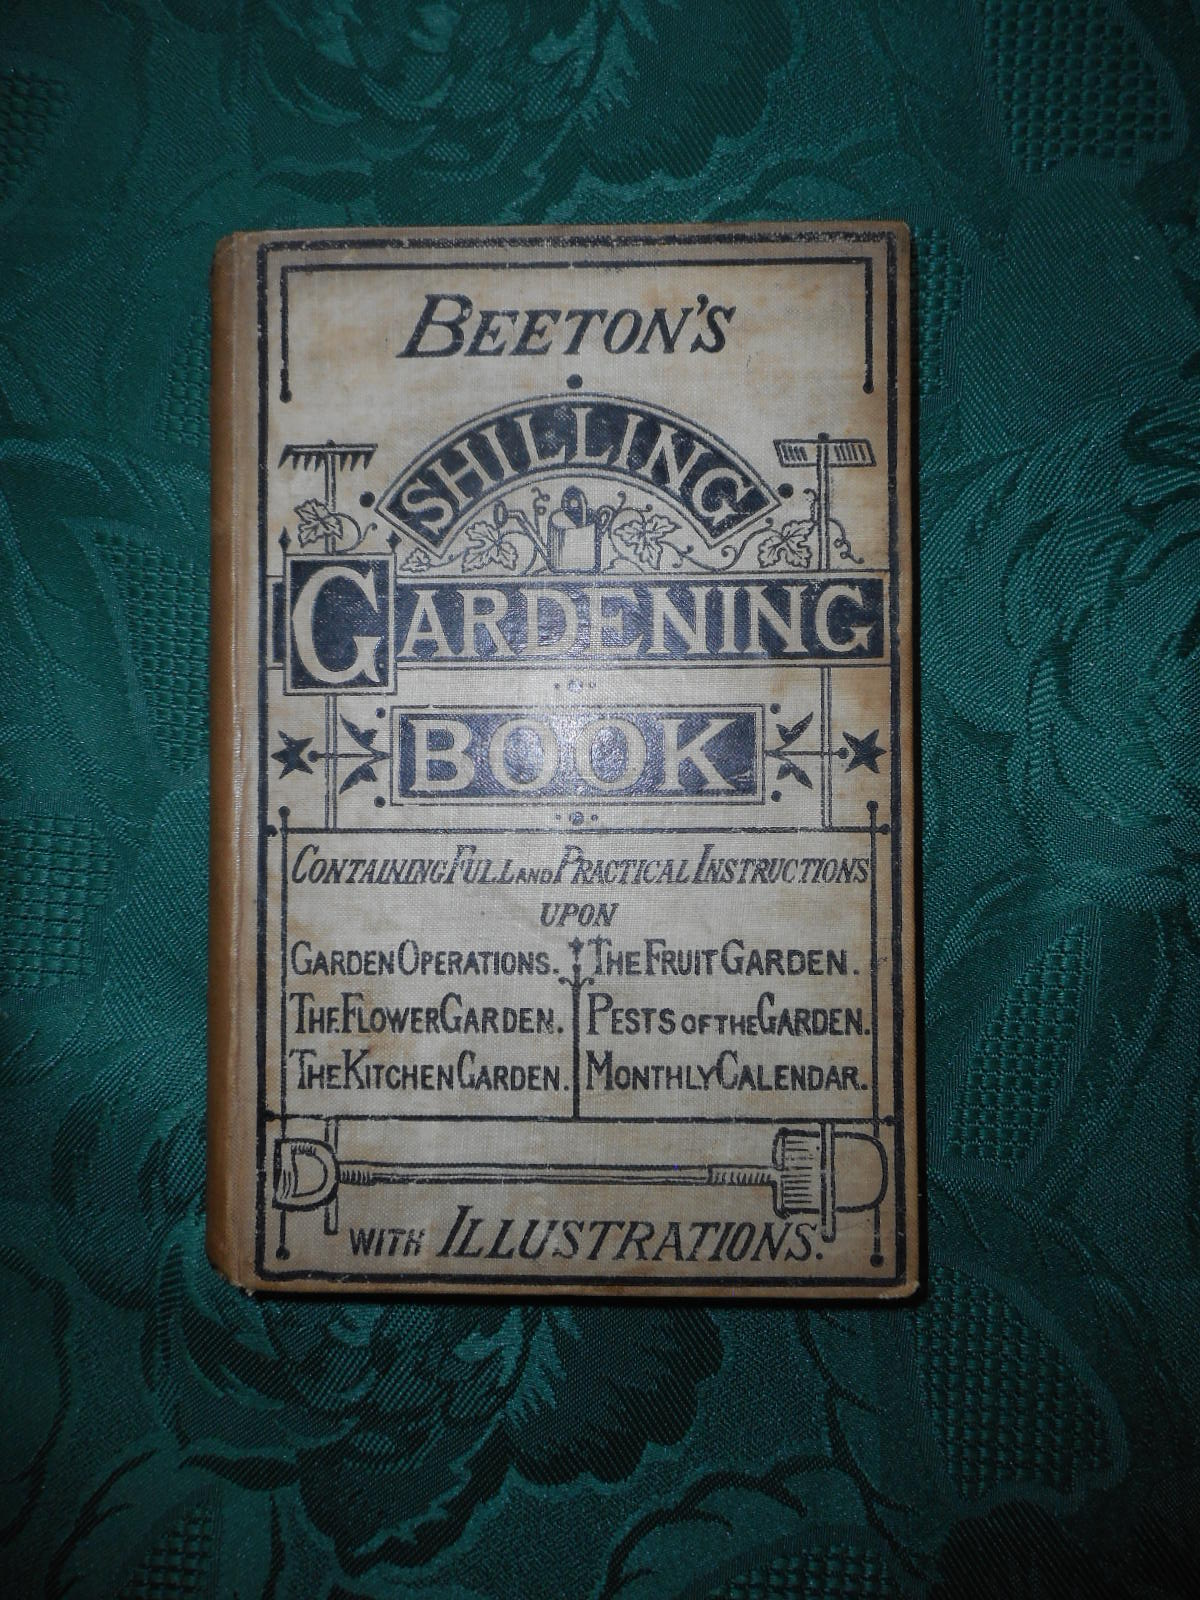 Image for Beeton's Shilling Gardening Book. Containing Full and Practical Instructions Concerning Garden Operations, the Flower Garden, the Fruit Garden, the Kitchen Garden, Pests of the Month,  With a Monthly Calendar or Work to be Done in the Garden Throughout the Year